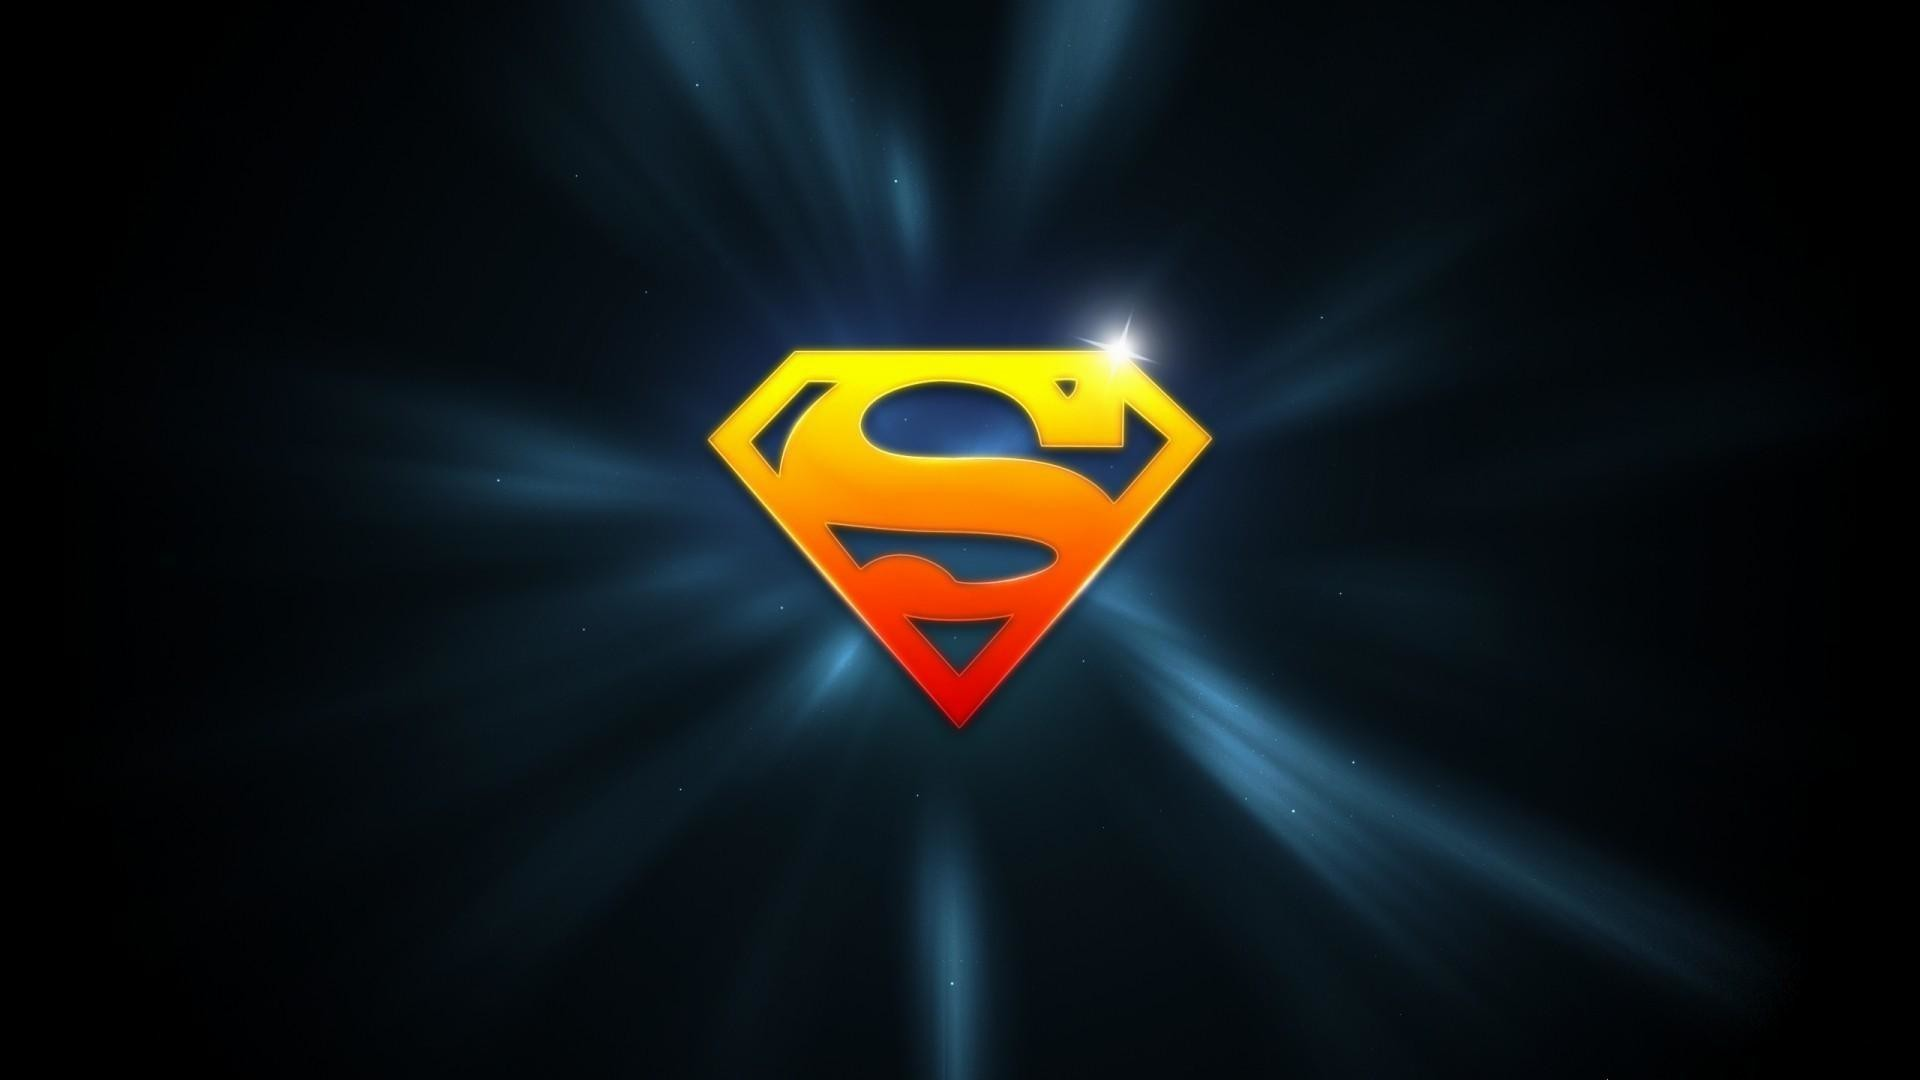 wallpaper.wiki-Superman-Logo-Ipad-Pictures-HD-PIC-